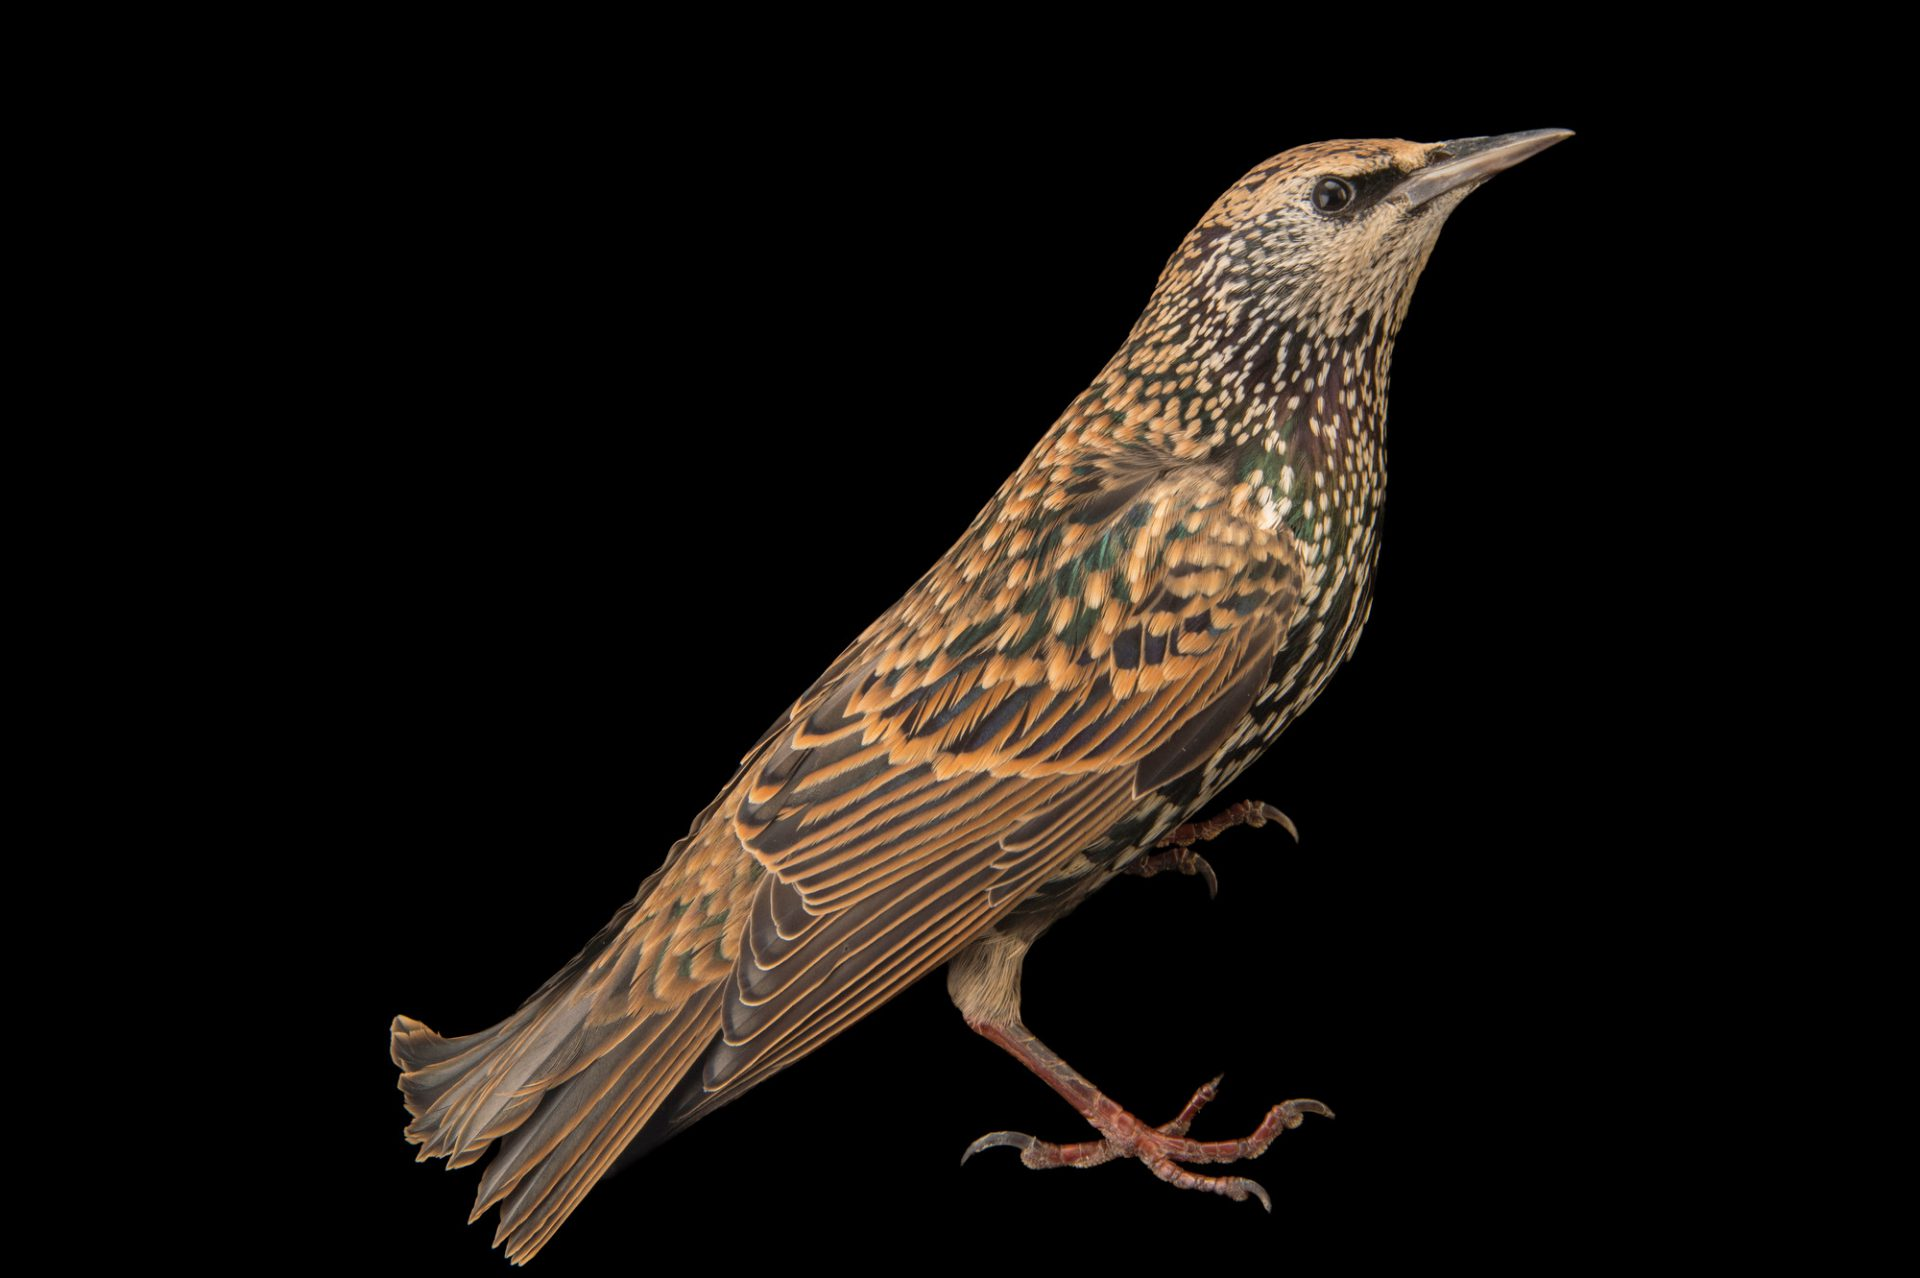 Picture of a common starling (Sturnus vulgaris vulgaris) in winter plumage at the Plzen Zoo in the Czech Republic.